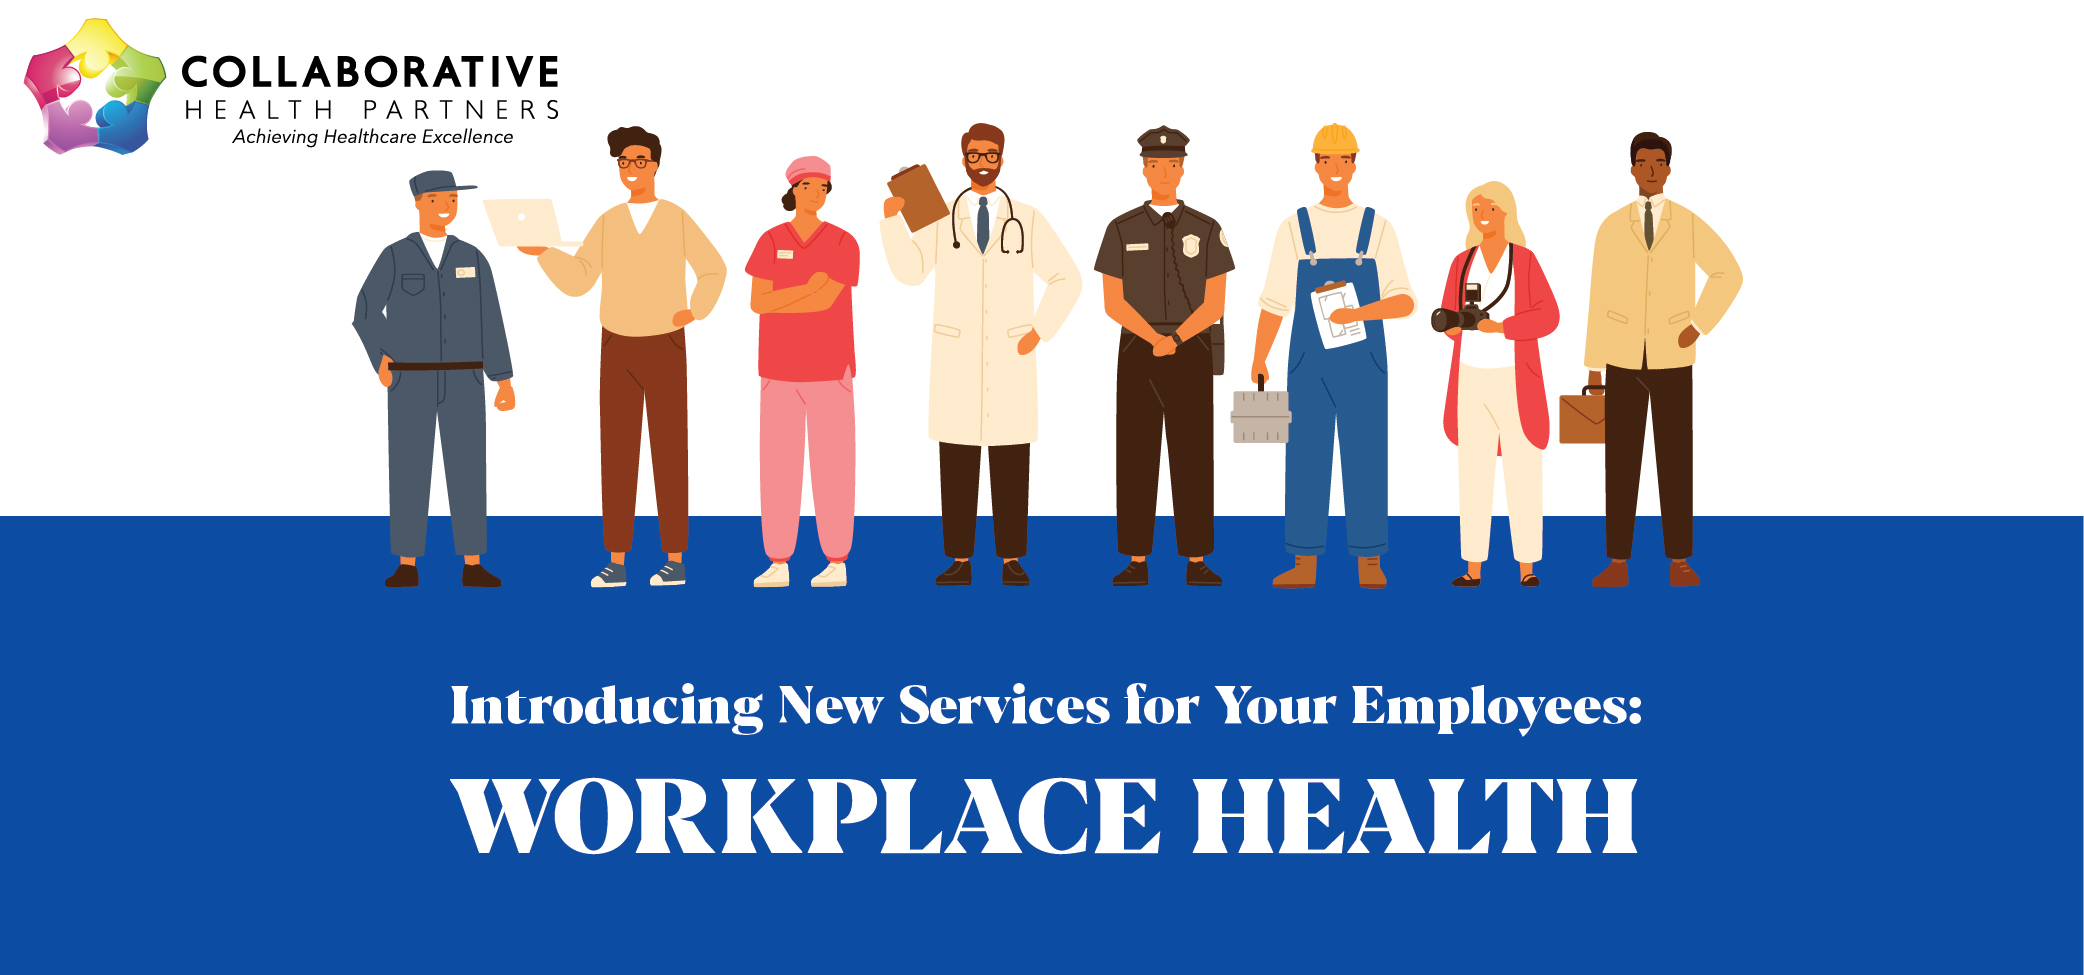 collaborative health partners workplace health options for virginia employers and businesses